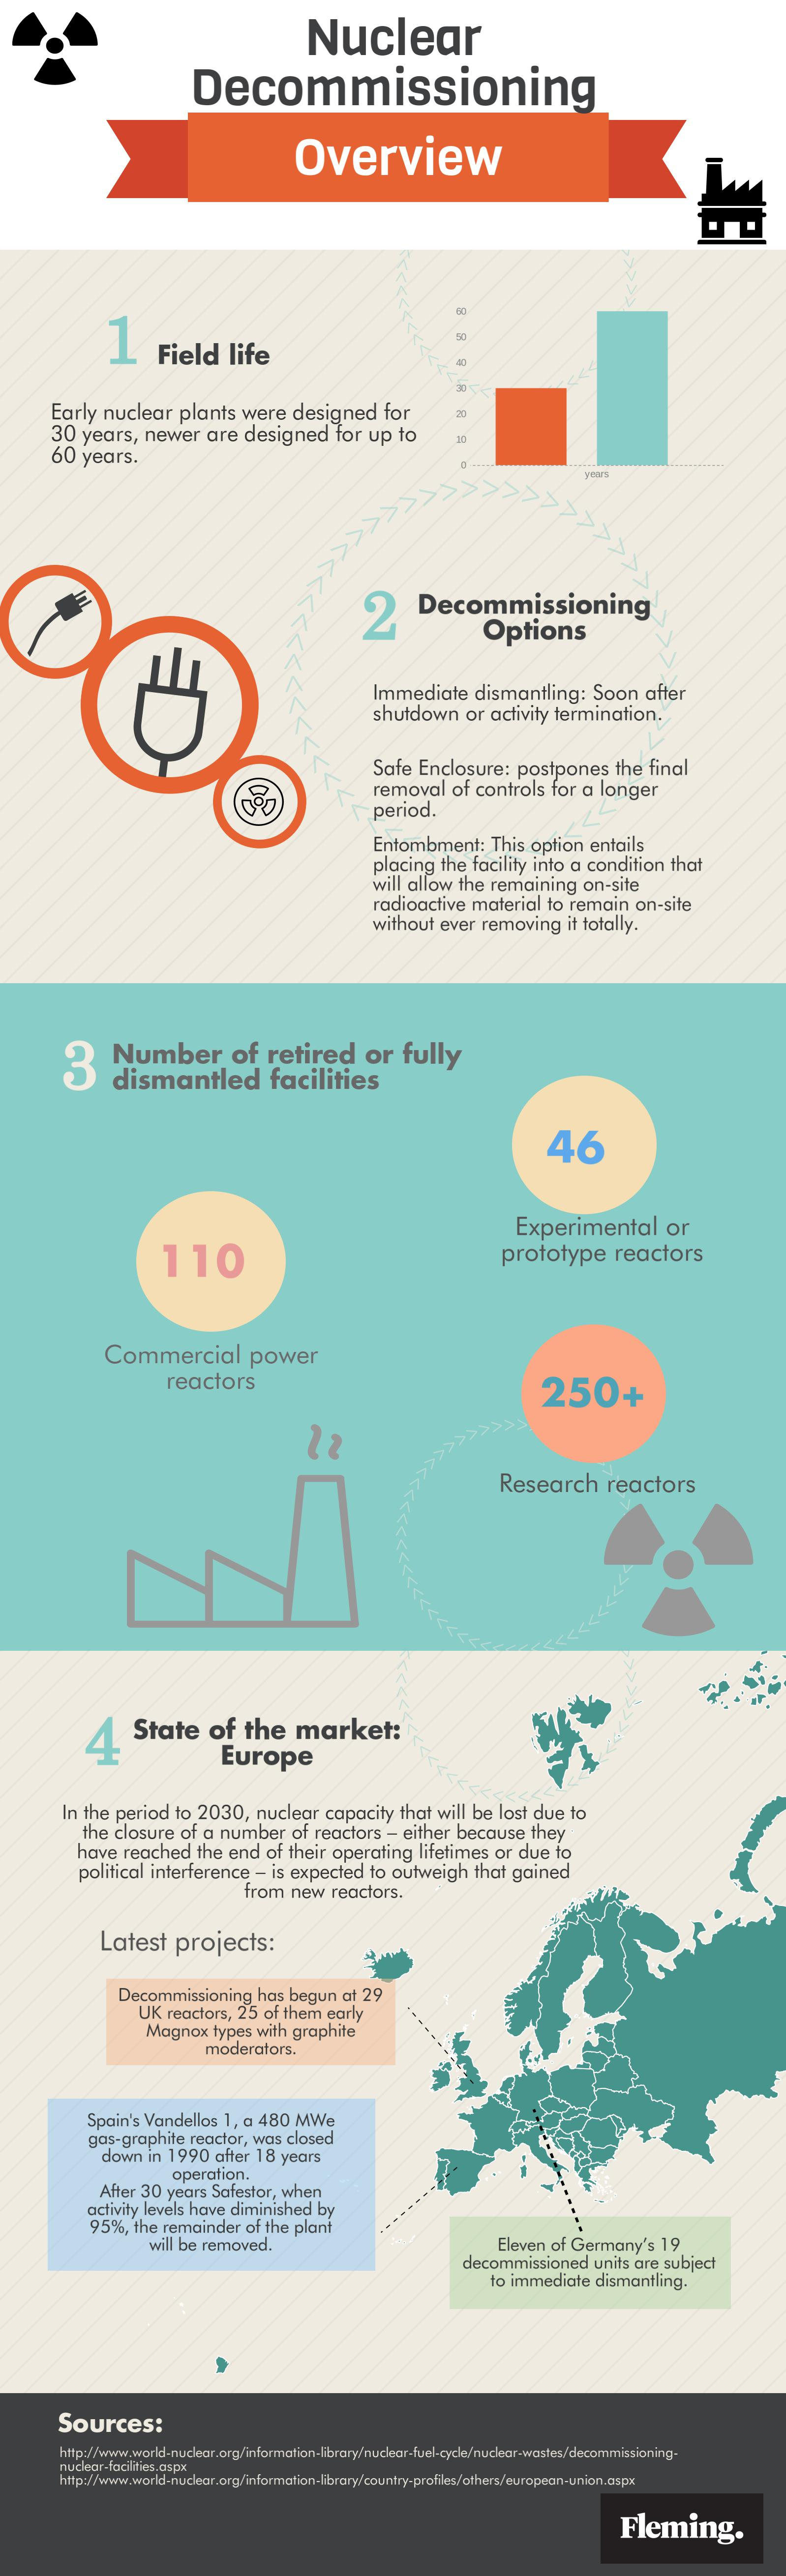 Nuclear Decommissioning Overview - infographic